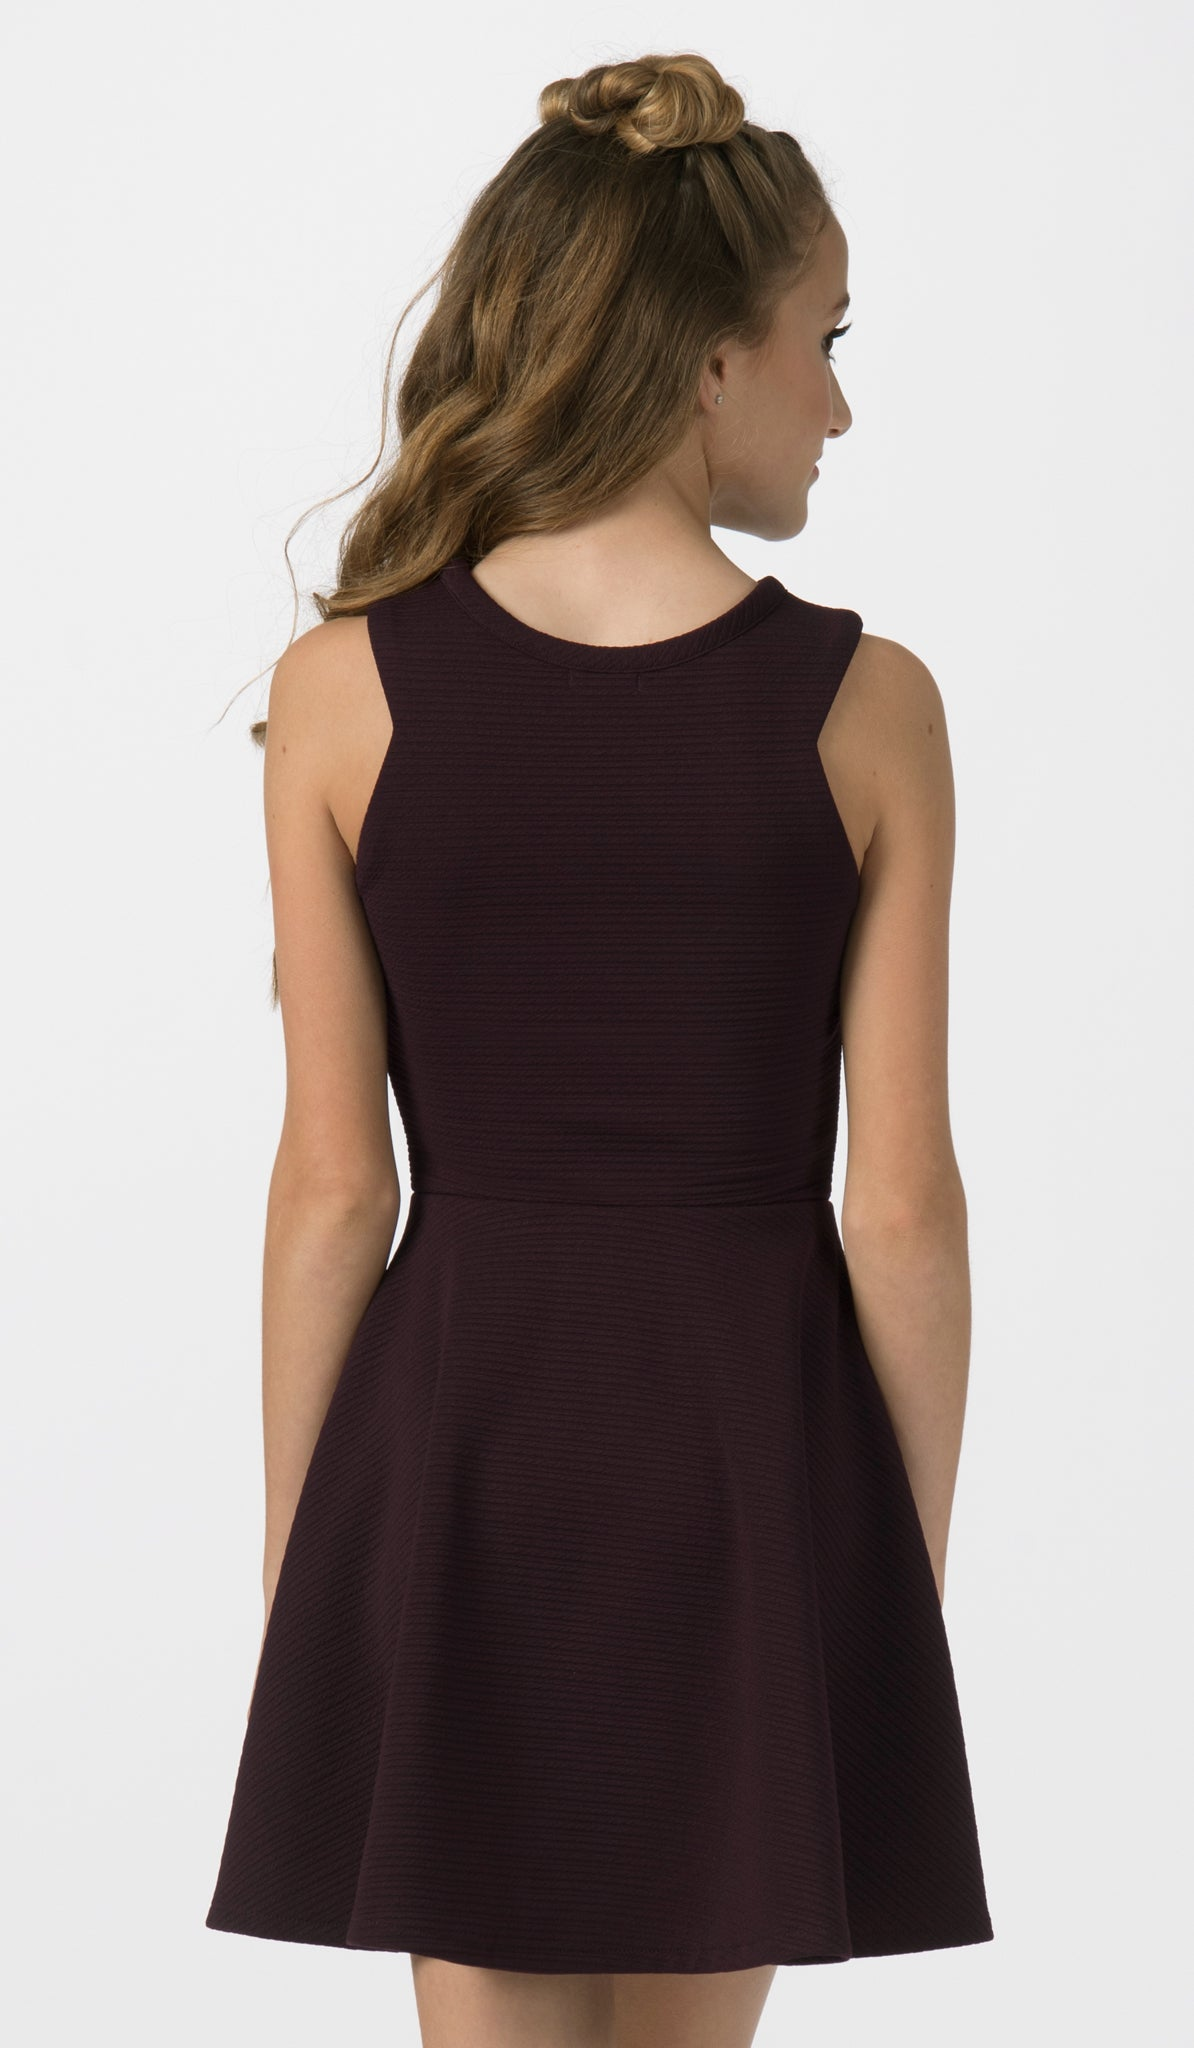 Sally Miller plum fit and flare special occasion dress back view.